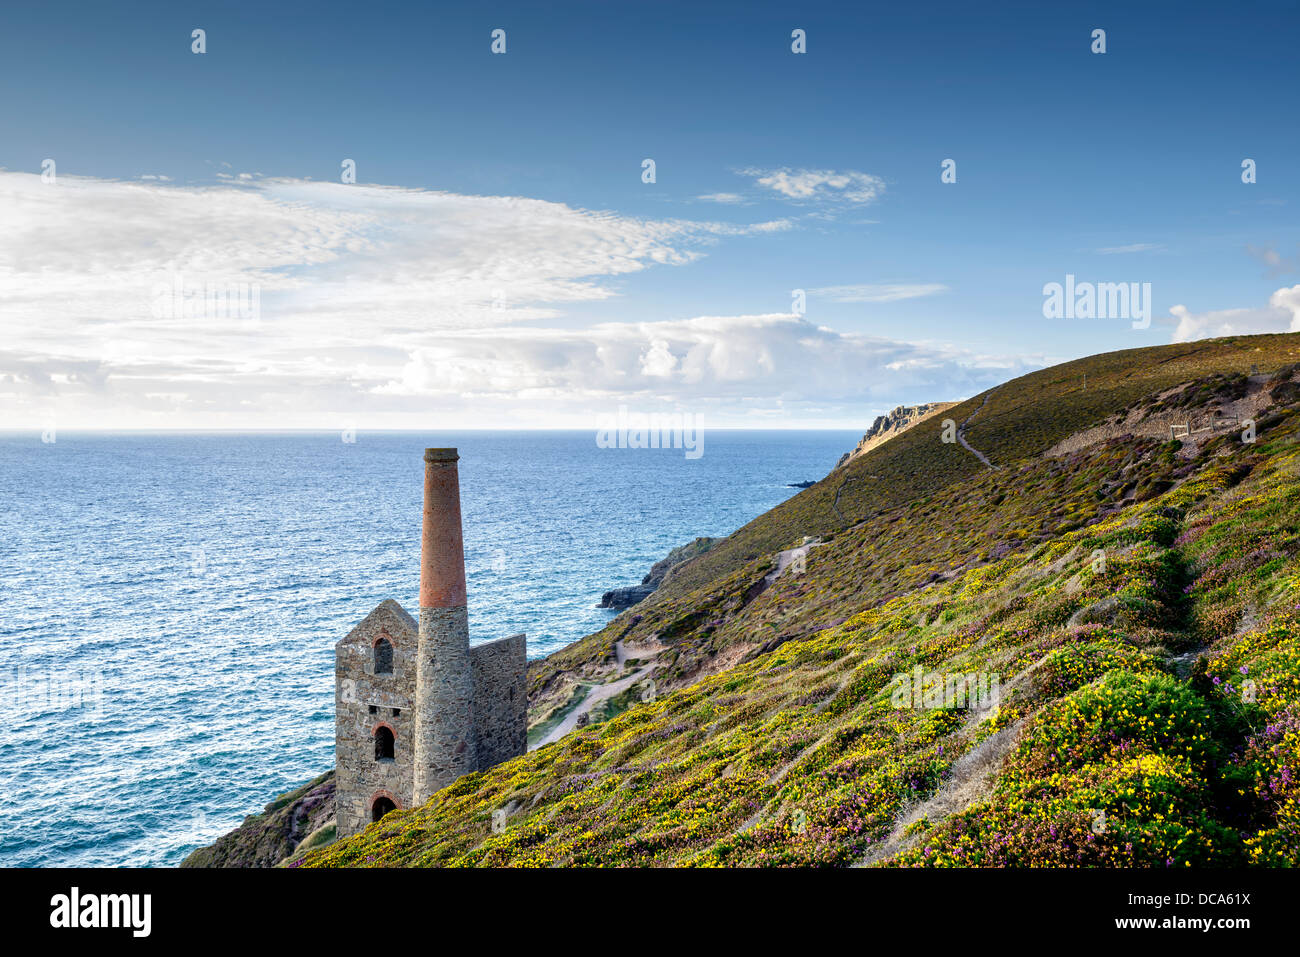 The coast at St Agnes in Cornwall with the Wheal Coates tin mine perched on the edge of the cliffs. - Stock Image